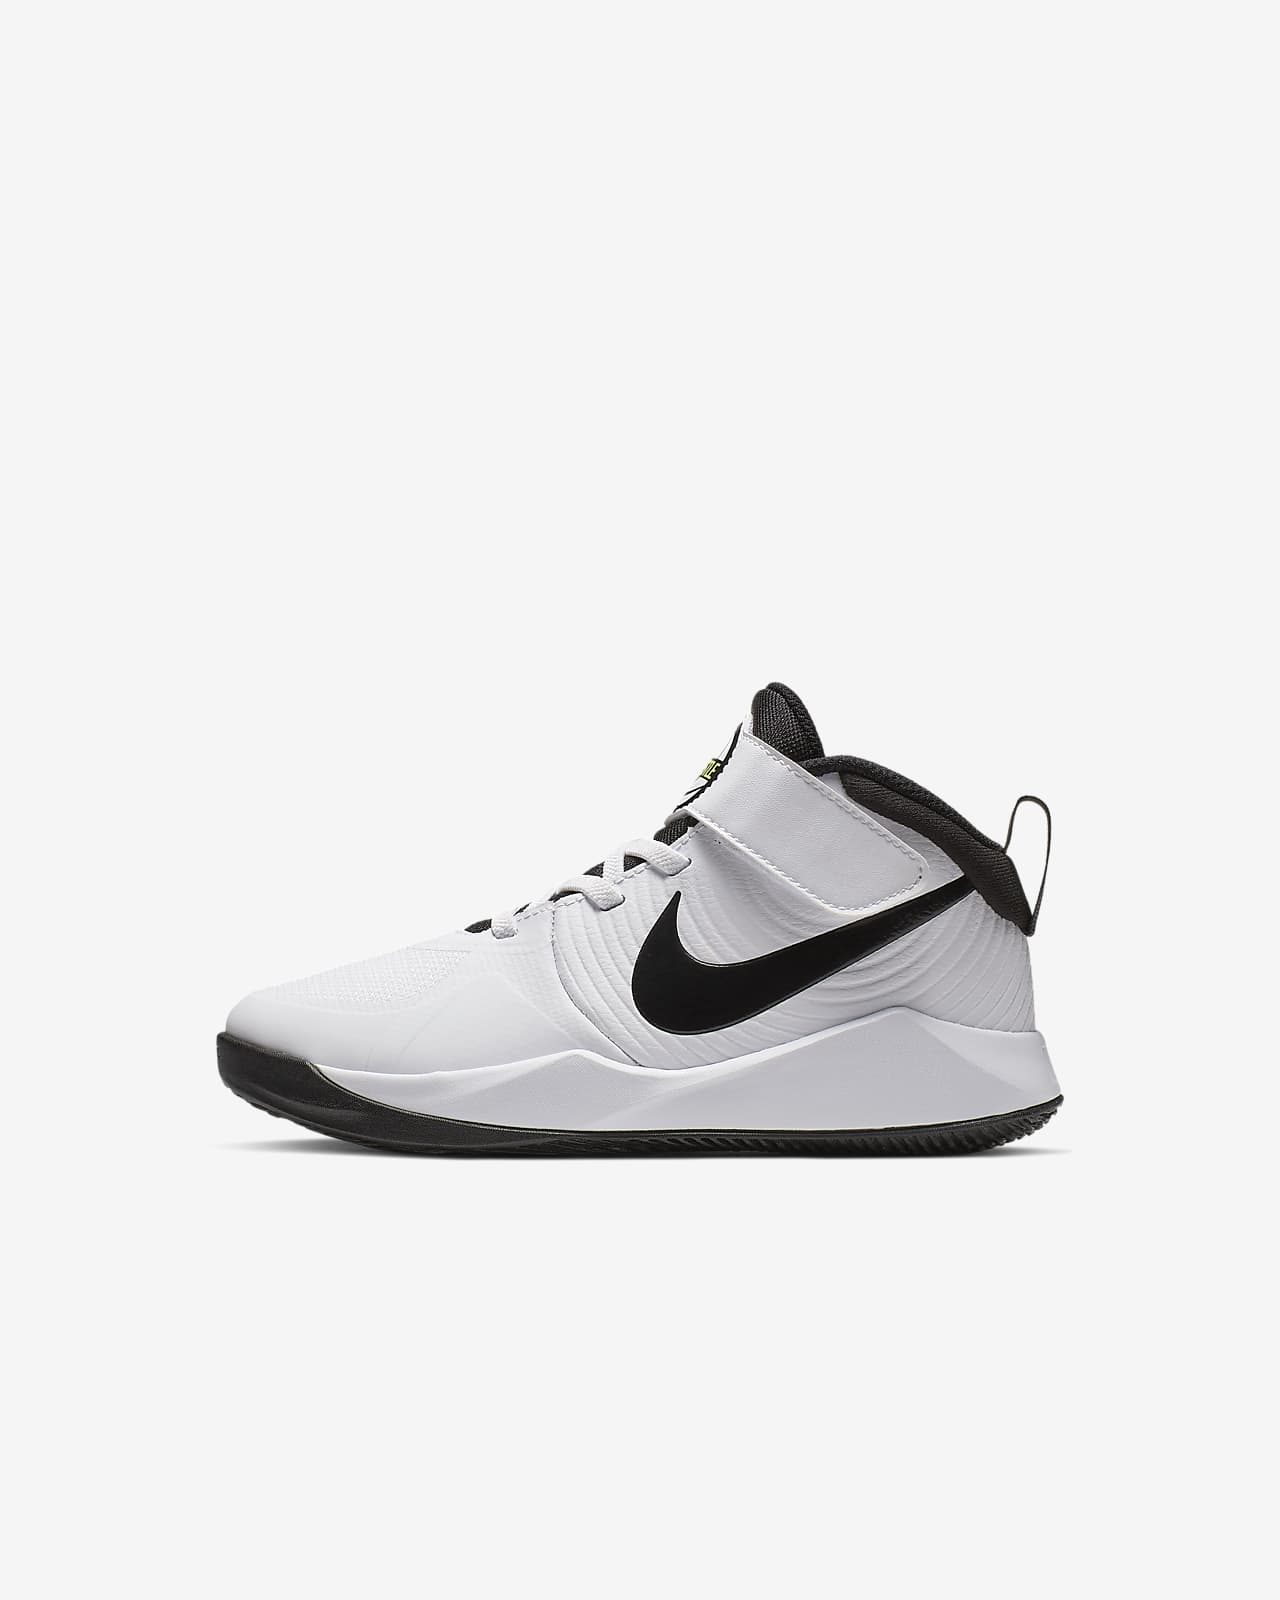 Golpeteo Calibre administración  Nike Team Hustle D 9 Younger Kids' Shoe. Nike GB